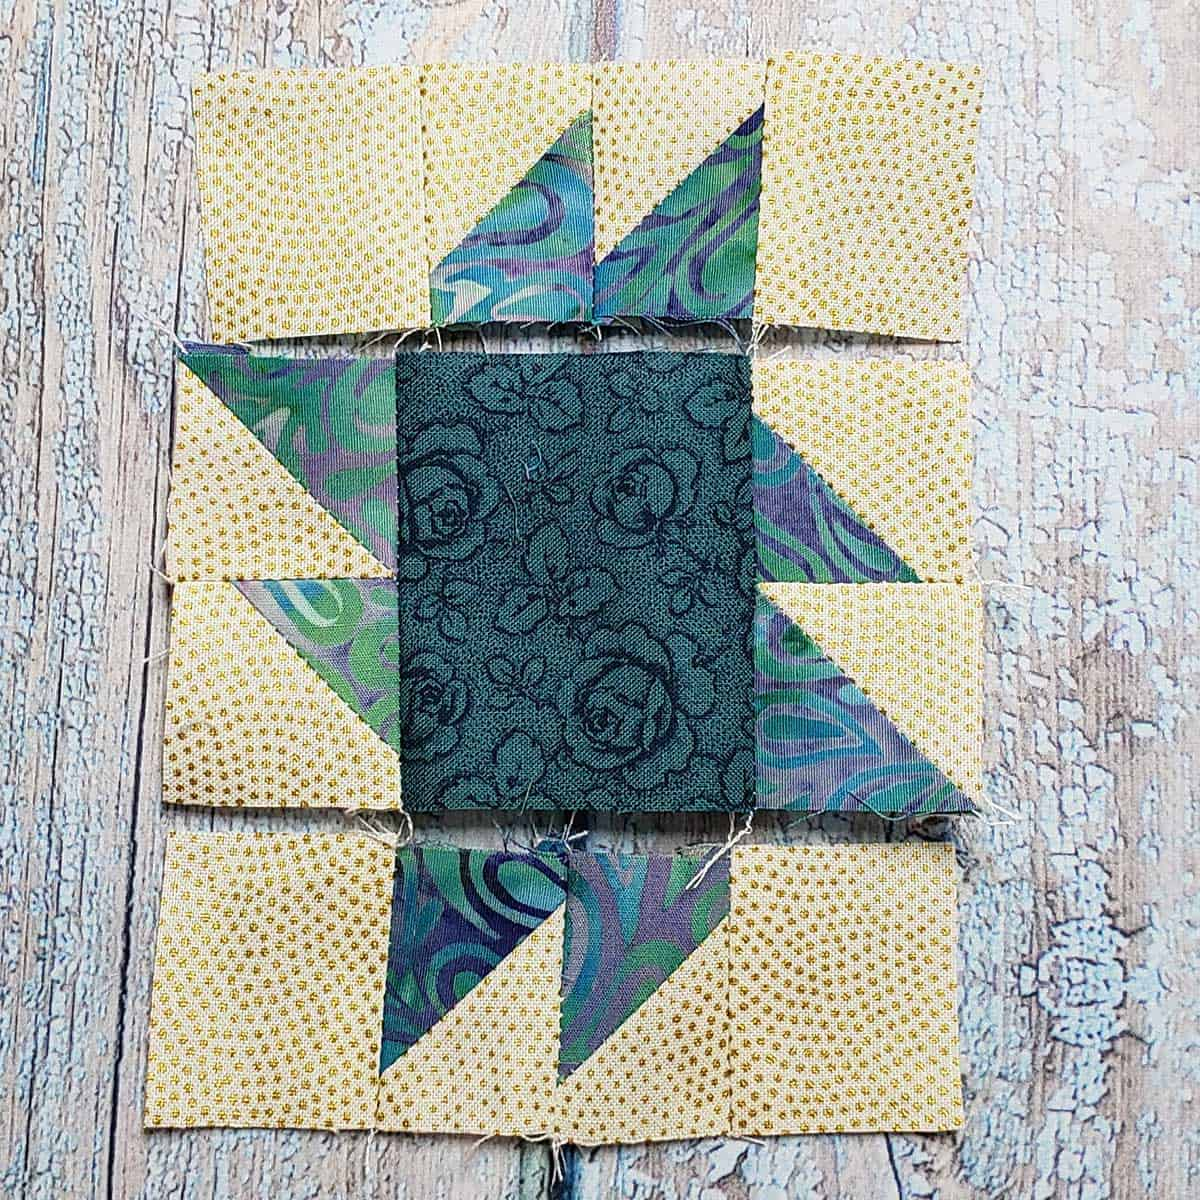 Rows of the Square and Points quilt block